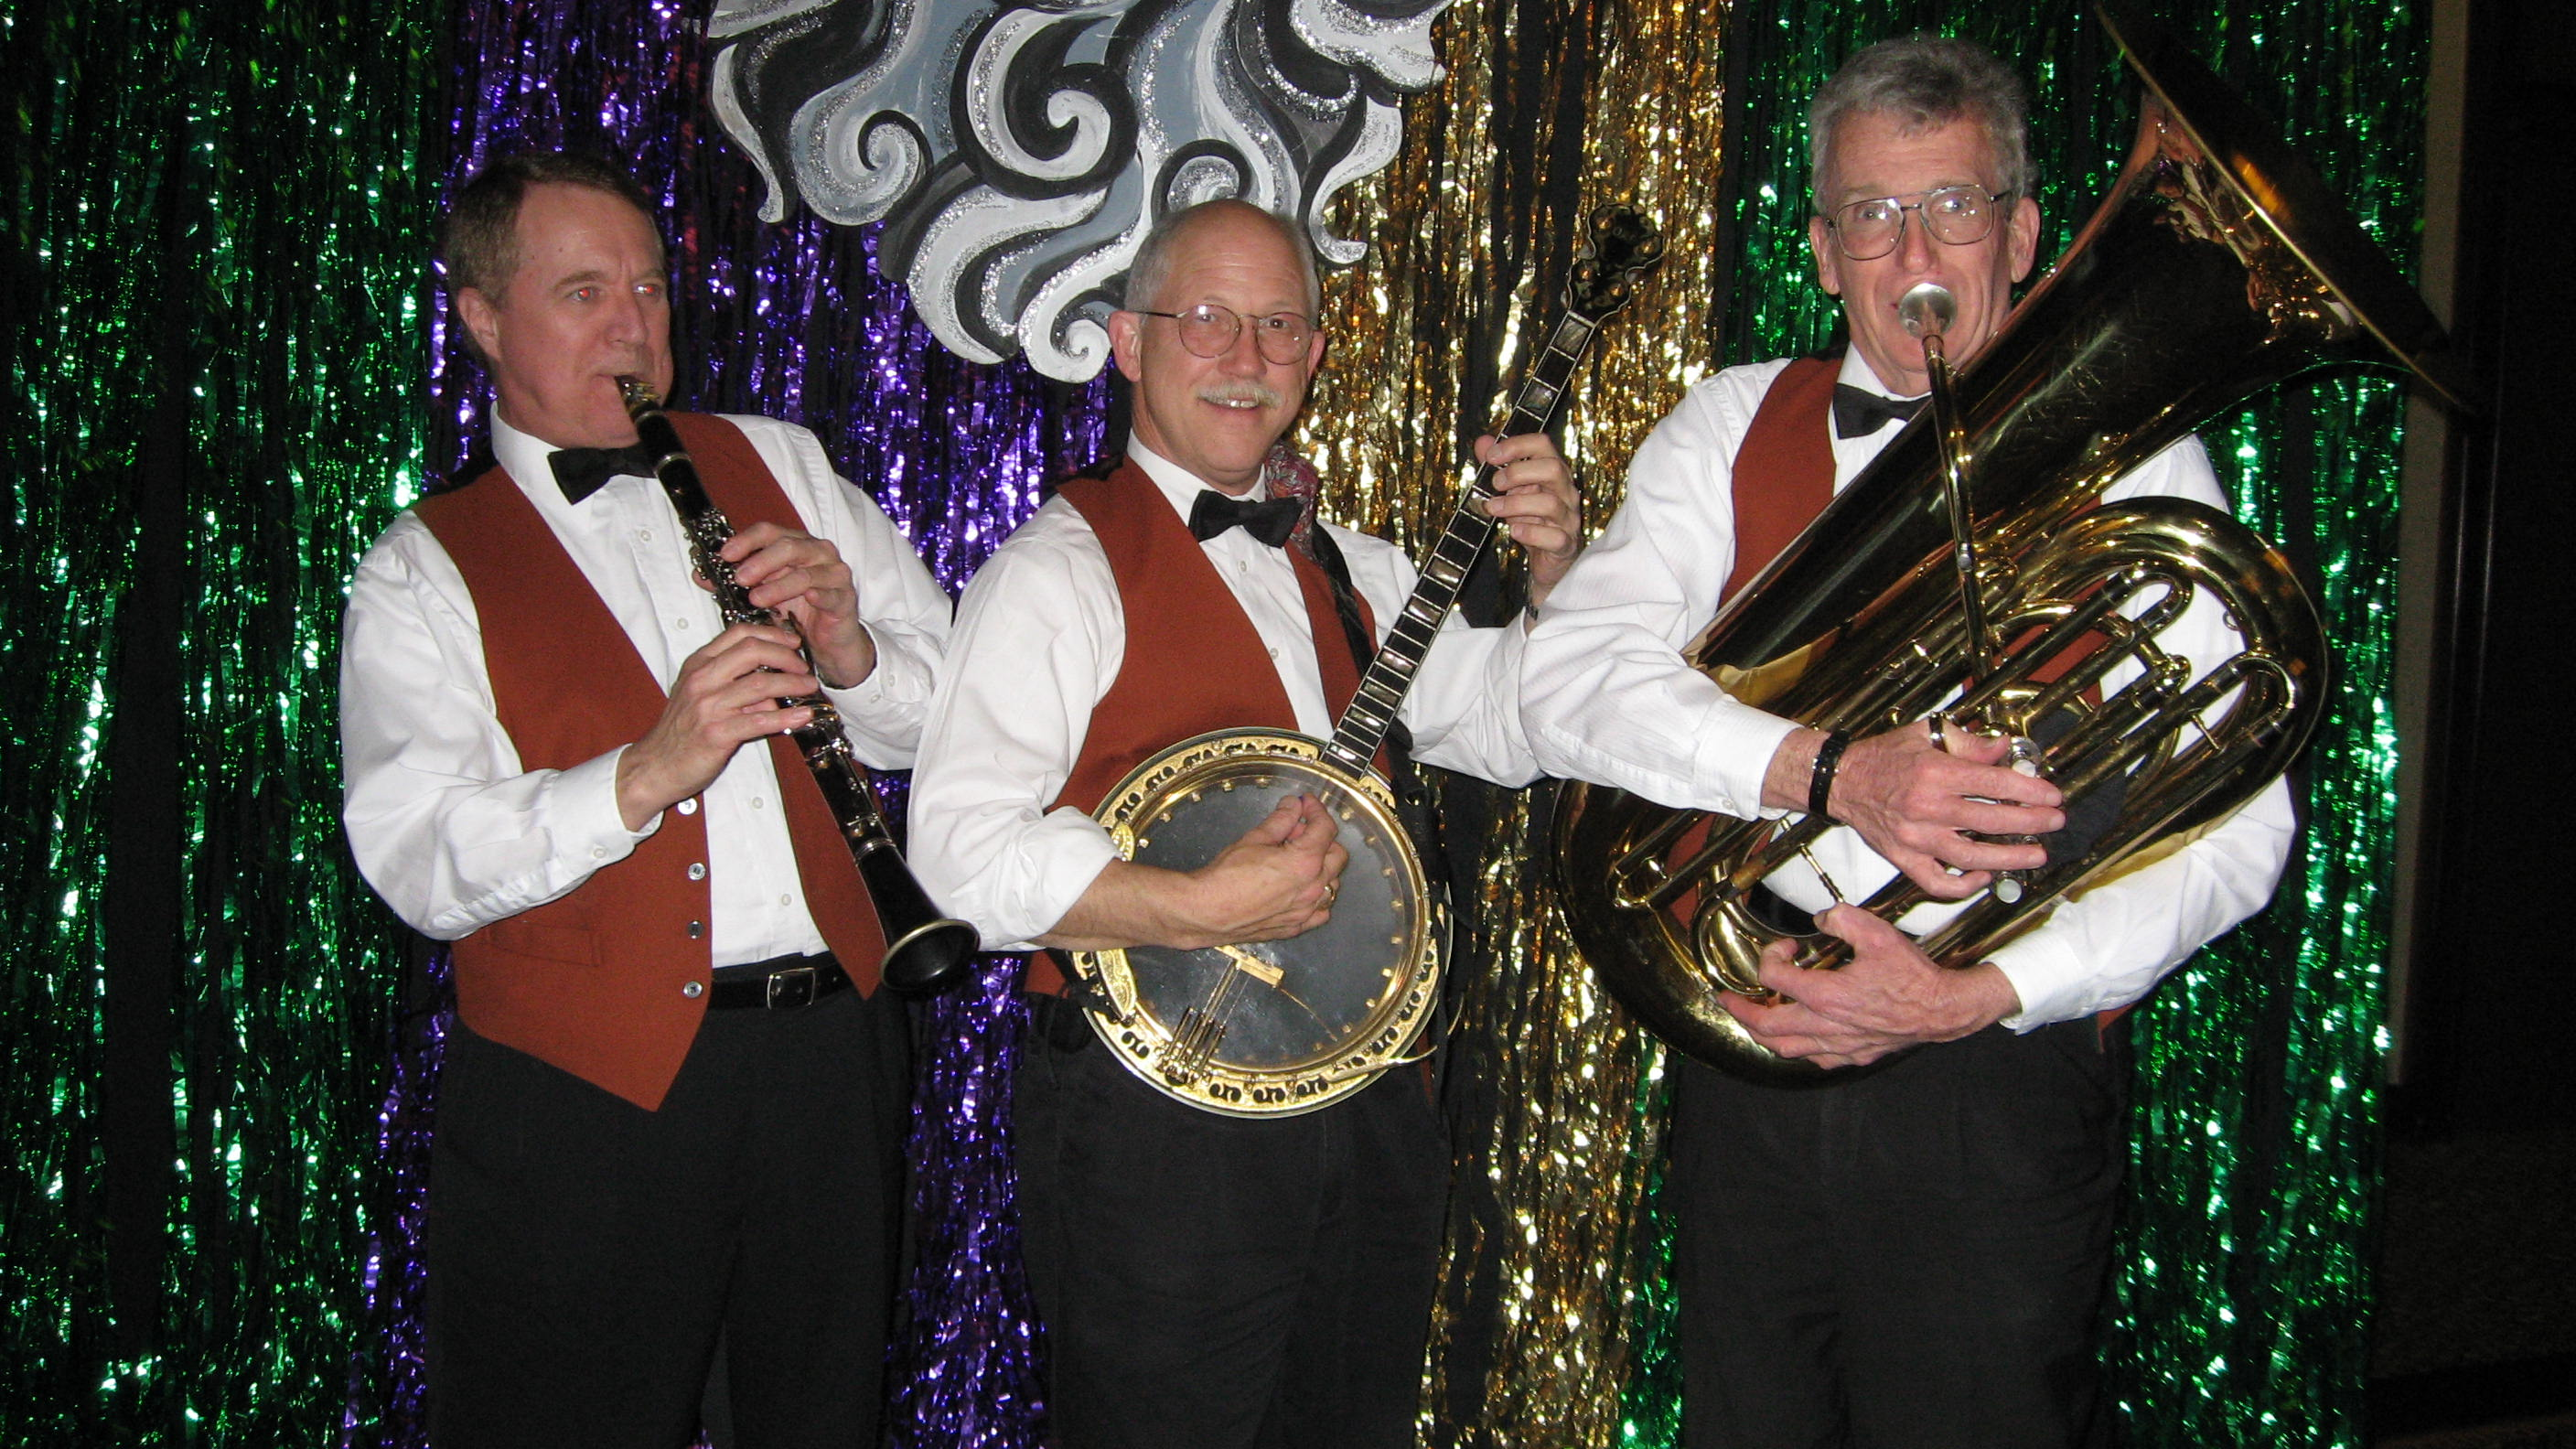 Fog City Dixieland Band